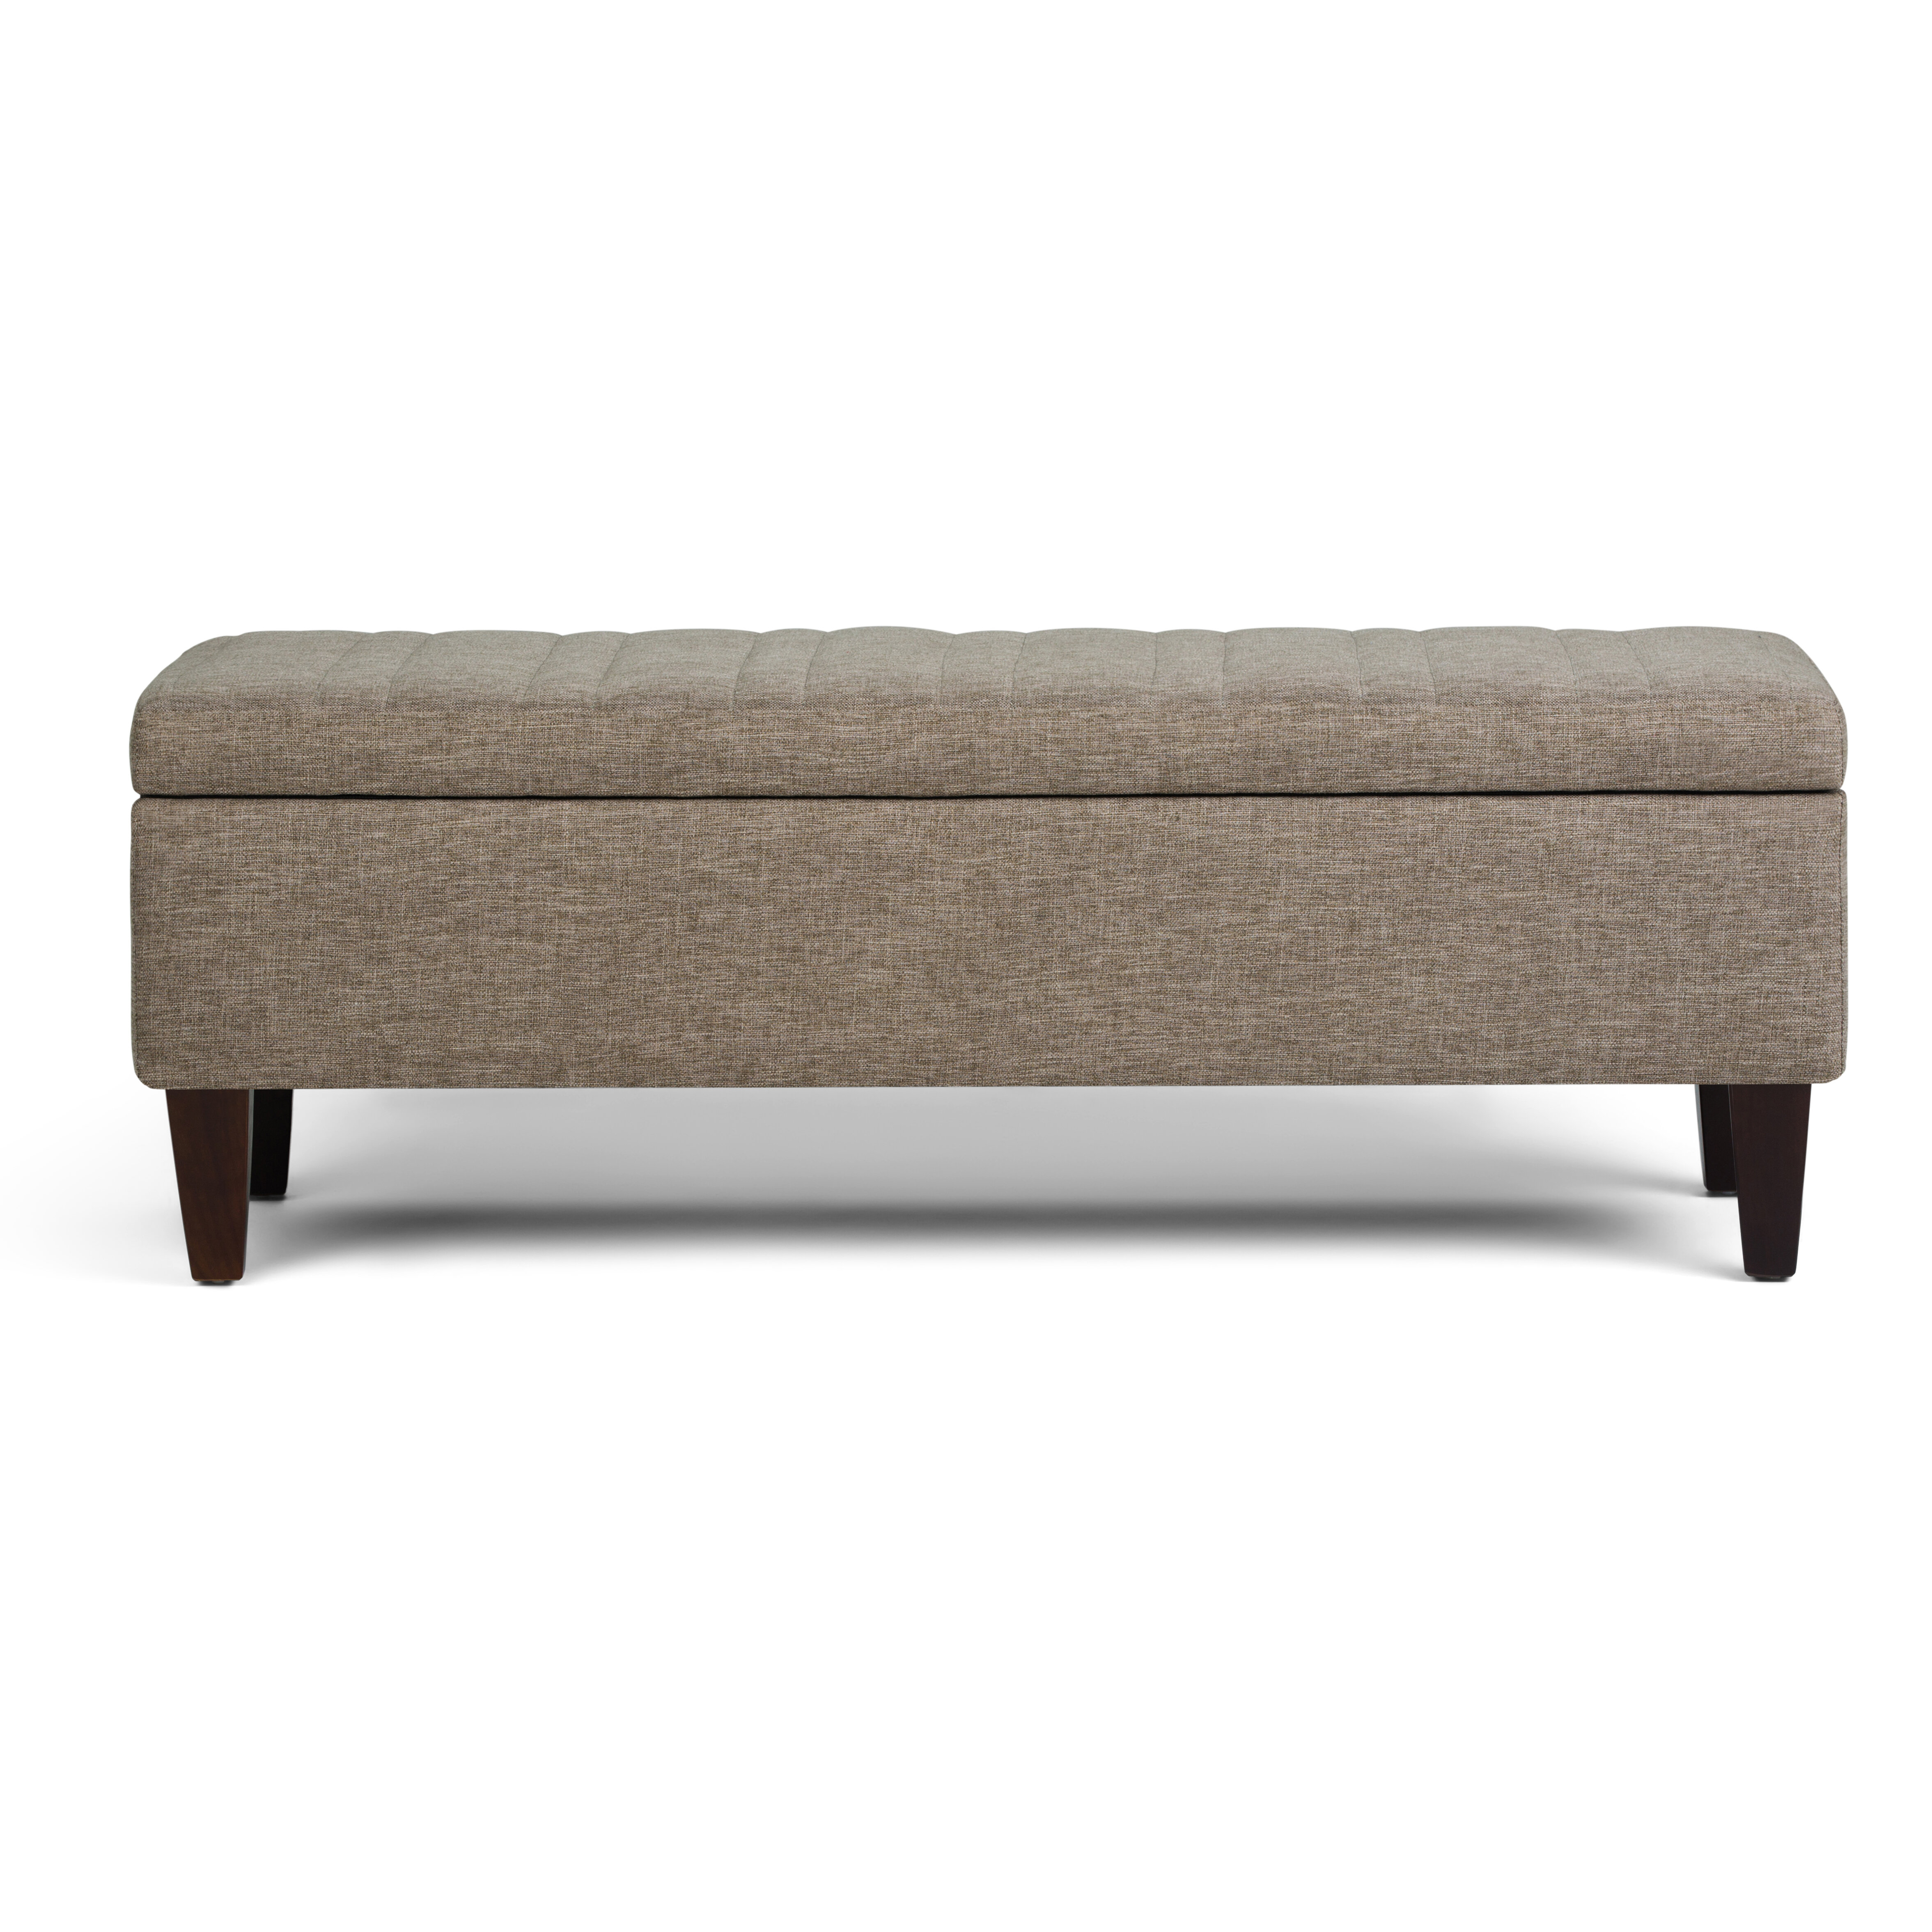 Sensational Laforce Upholstered Storage Bench Caraccident5 Cool Chair Designs And Ideas Caraccident5Info